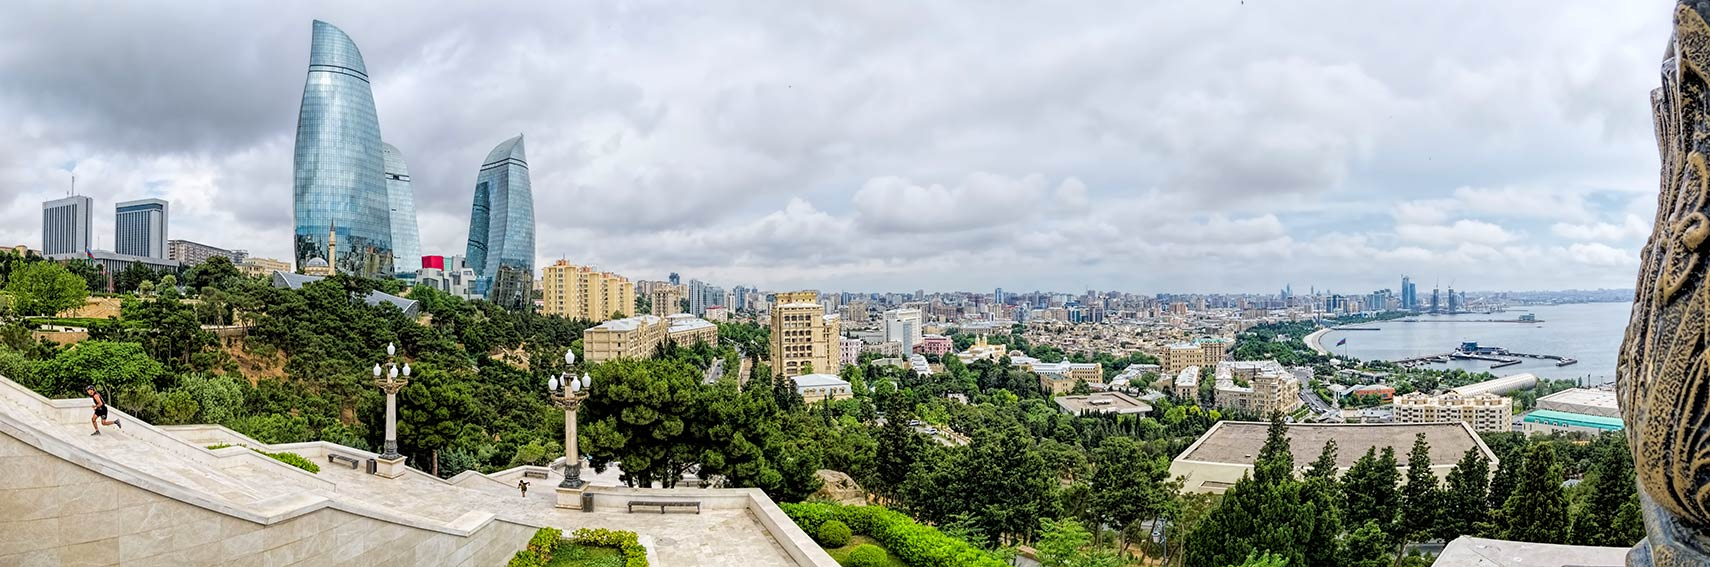 Panoramic view of Baku from Dağüstü Park